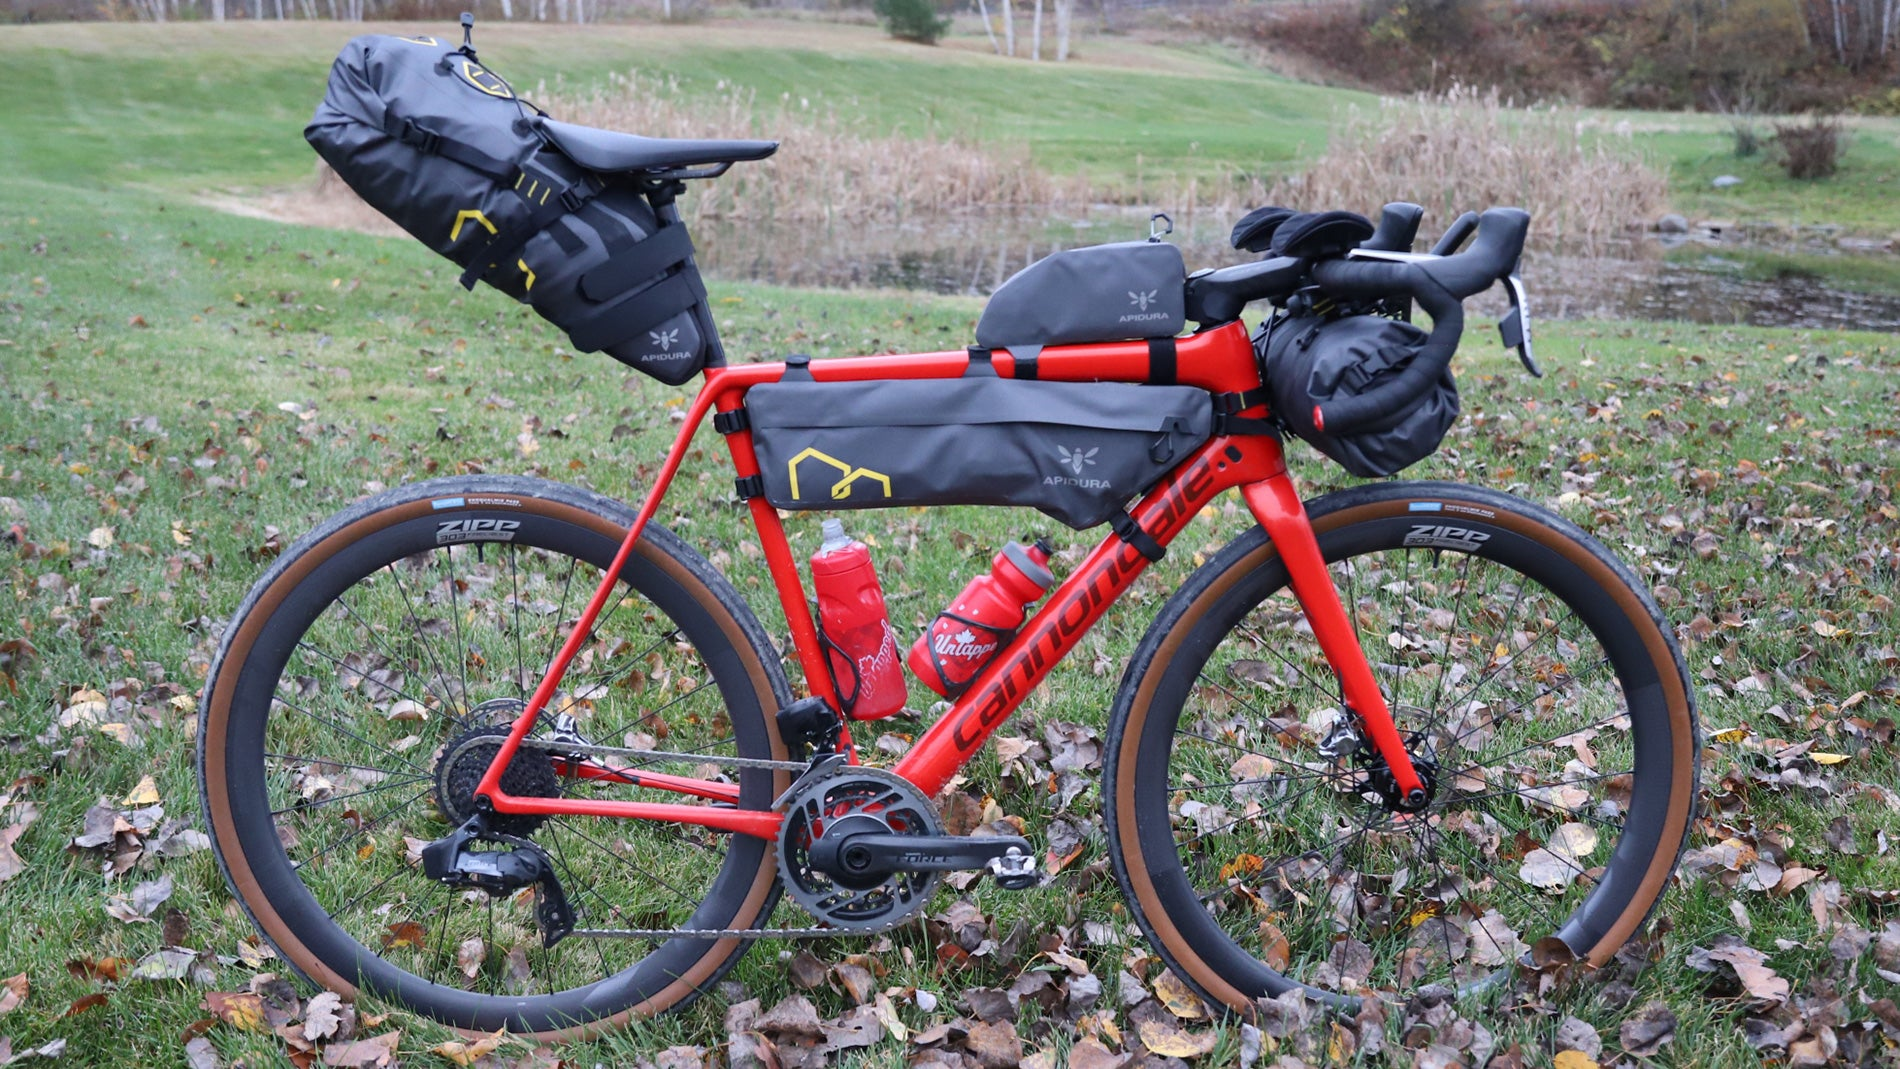 Tour de France veteran Ted King ventures into his first ultra-distance bikepacking race – VeloNews.com